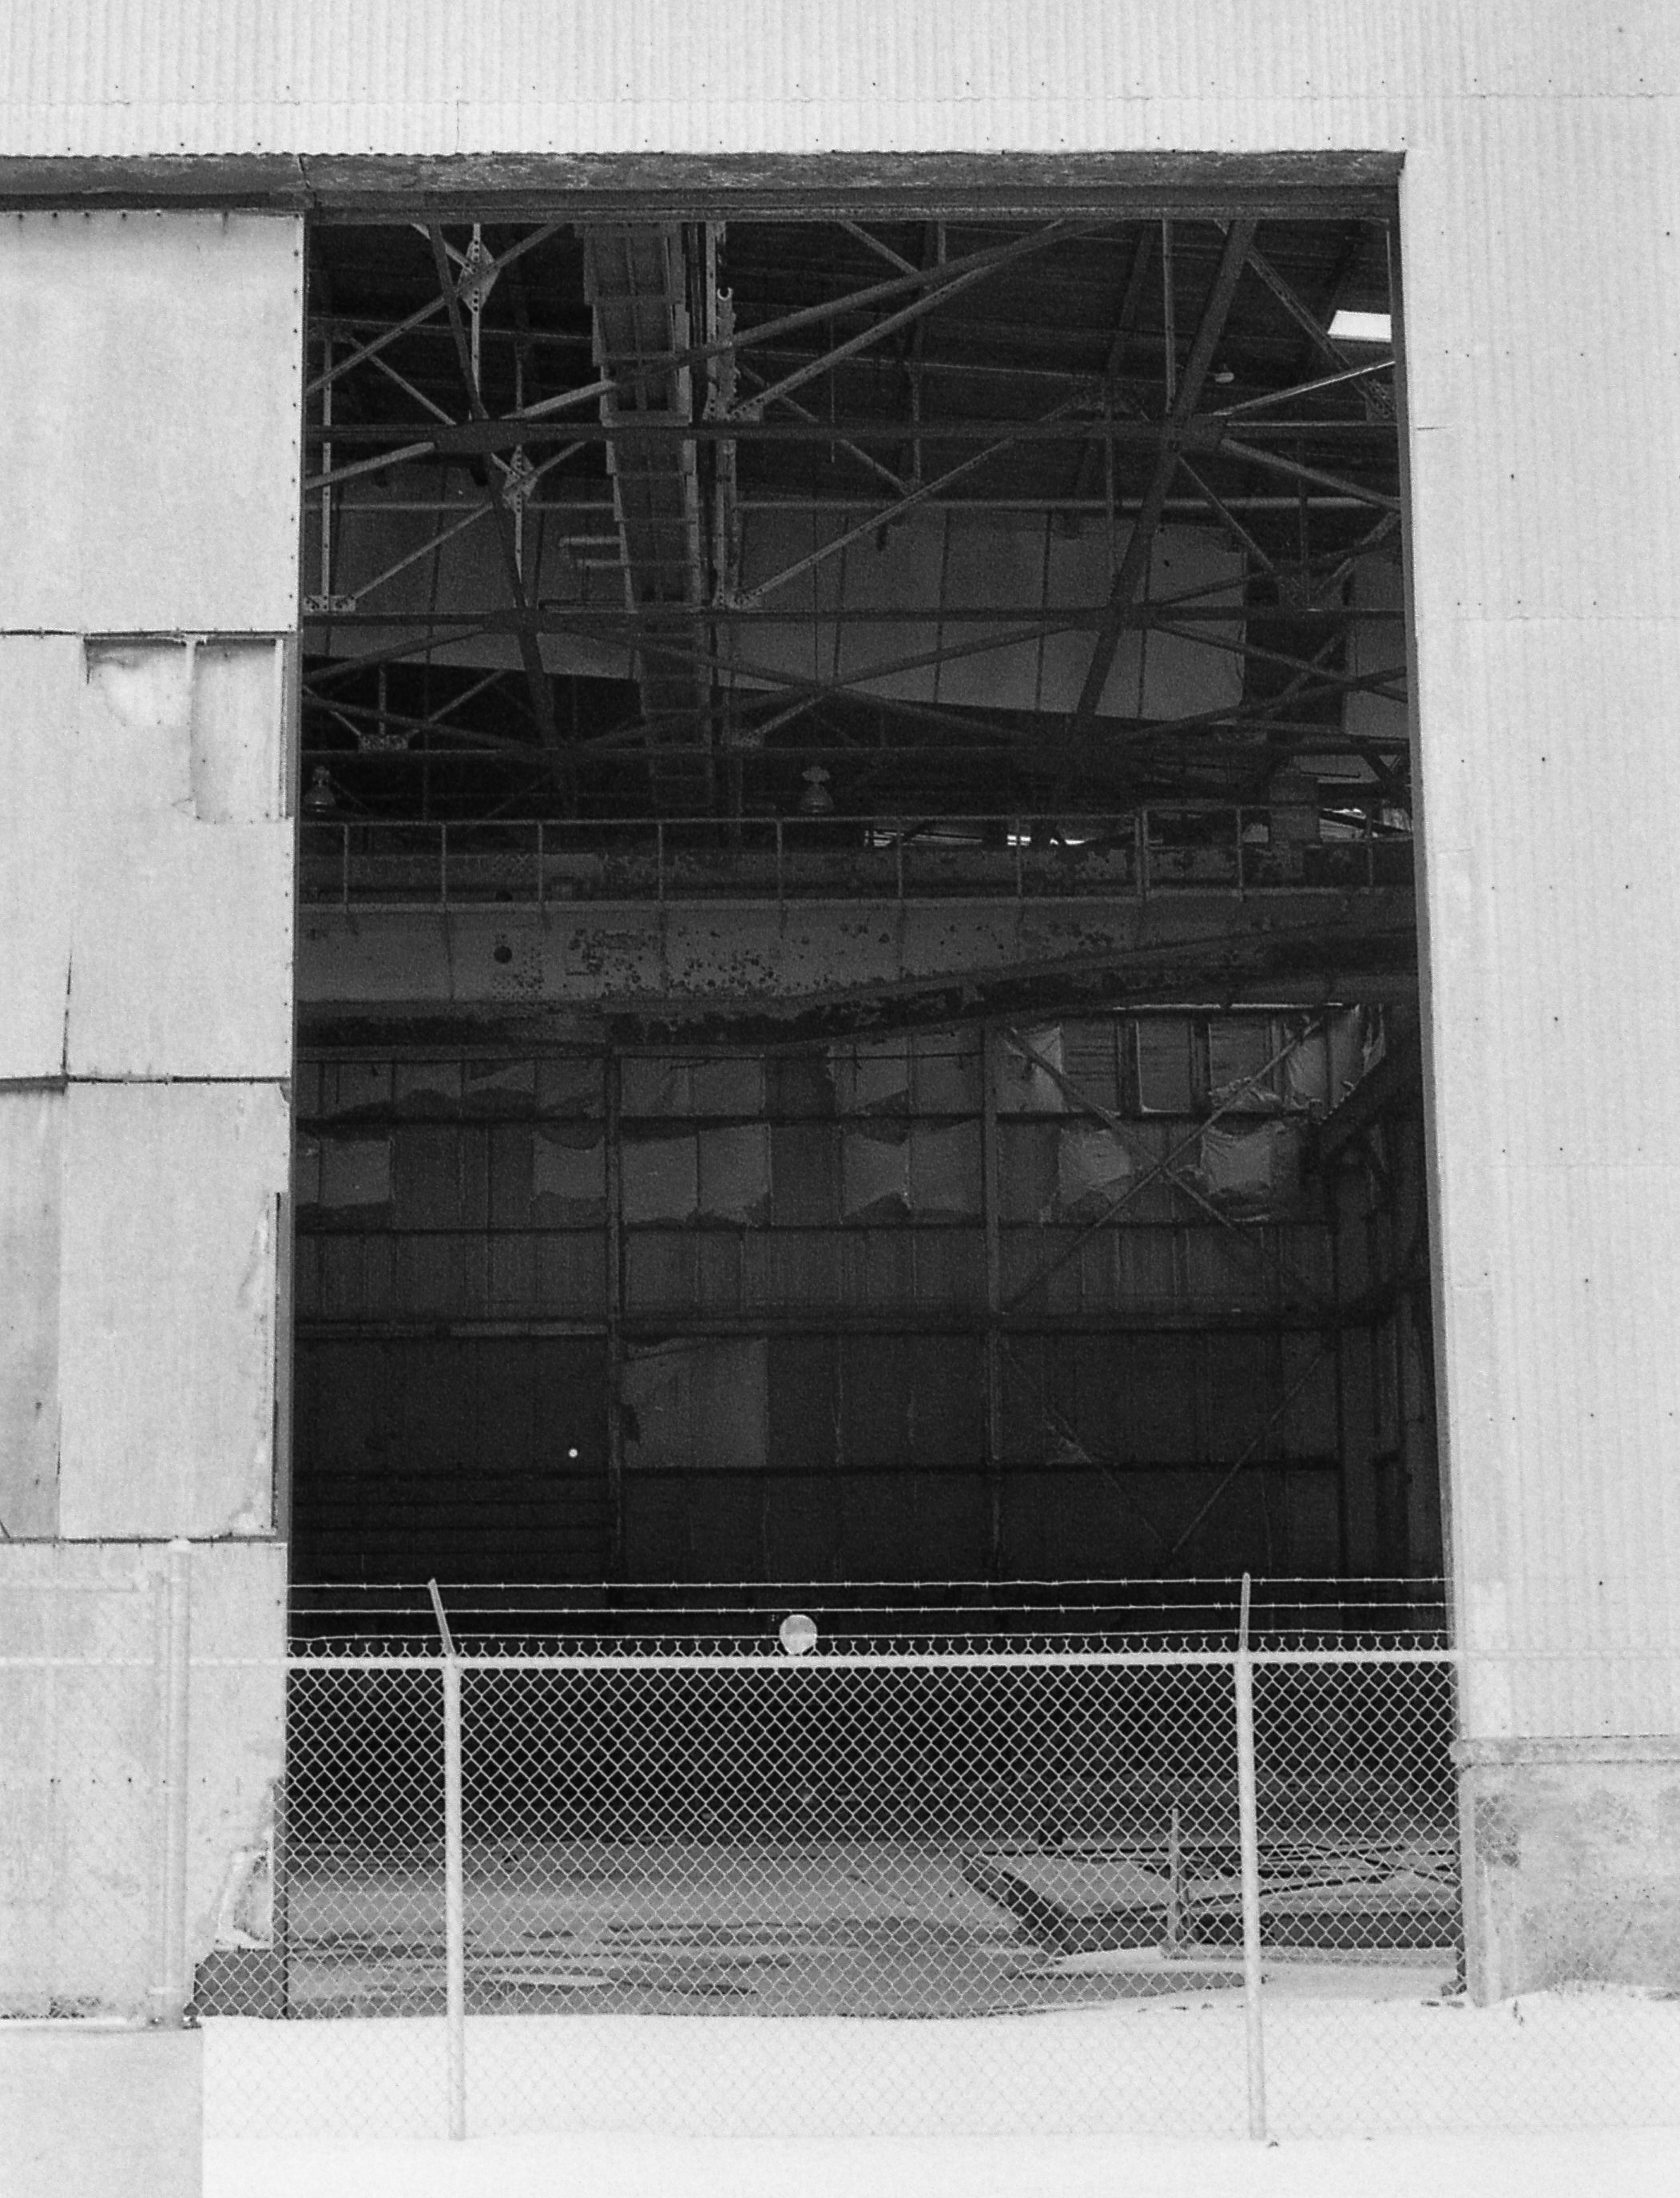 Disused aircraft hanger at the former United States Navy base at Argentia. This massive base constructed during World War II to protect the Atlantic convoys to Great Britain gradually transitioned from a full base with an air field and dockyards to a smaller facility tracking Soviet submarines in the North Atlantic. It closed in 1994.